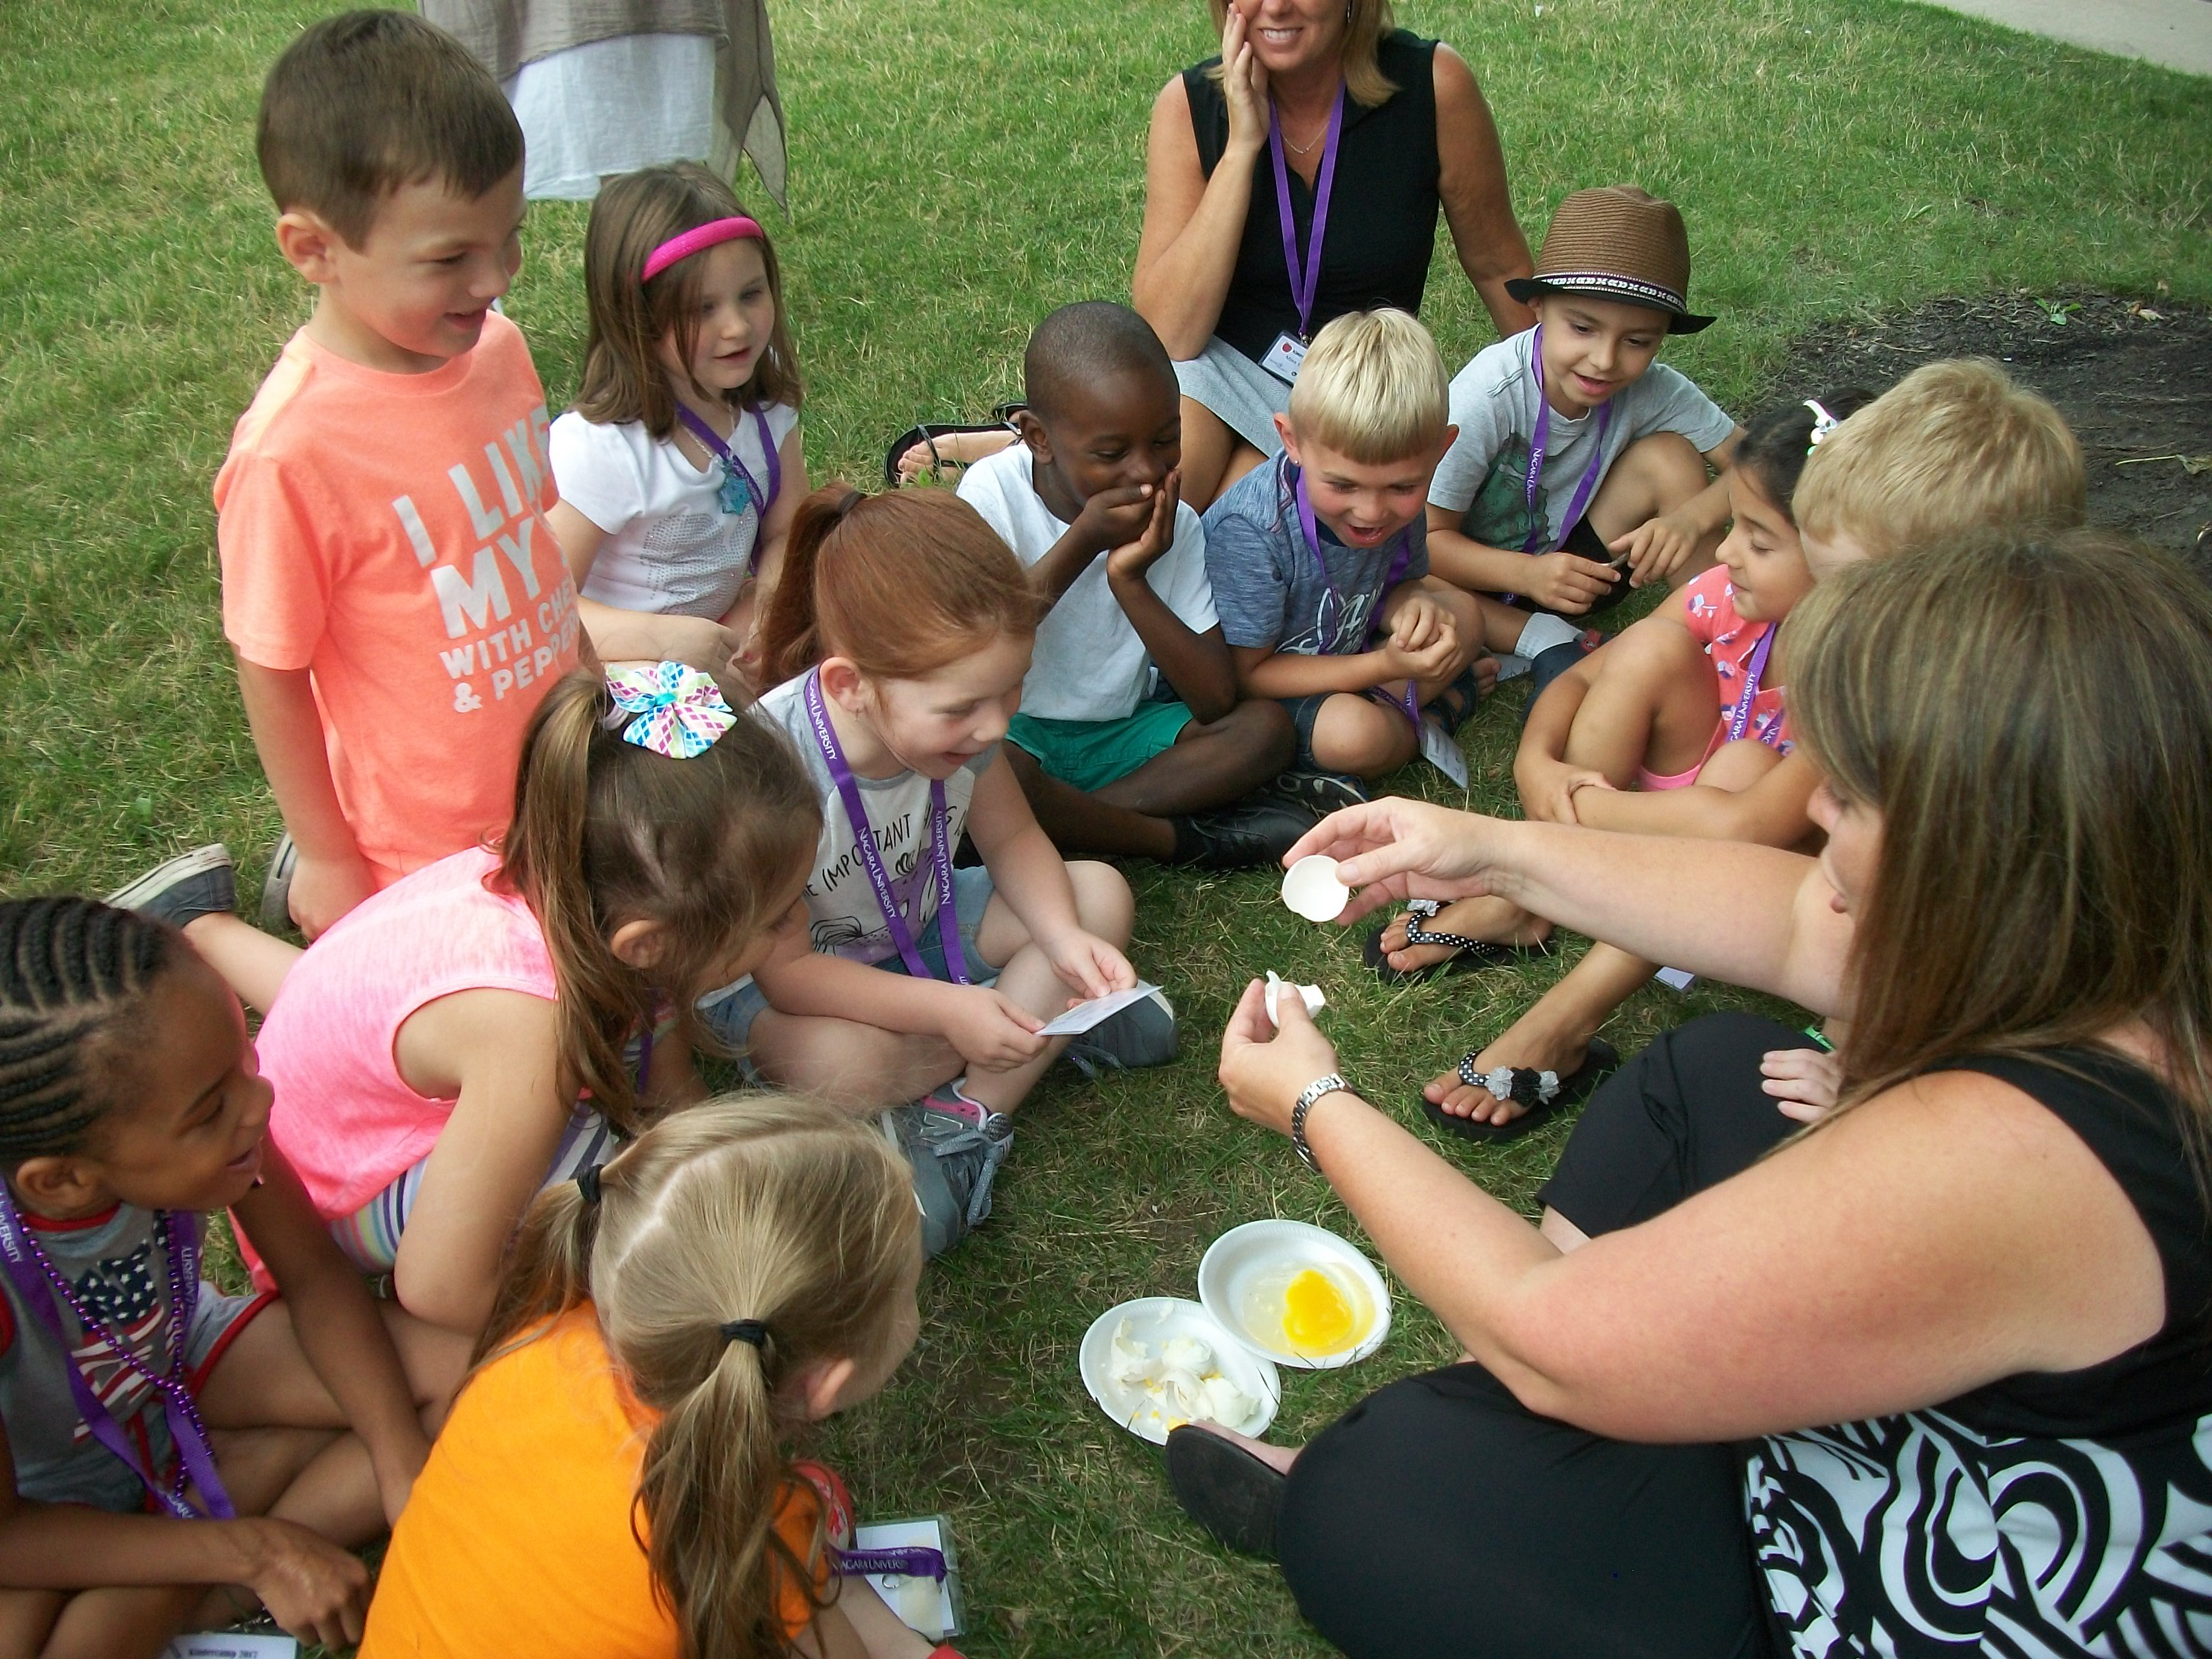 Niagara University Camp to Help Children Get Ready for Kindergarten